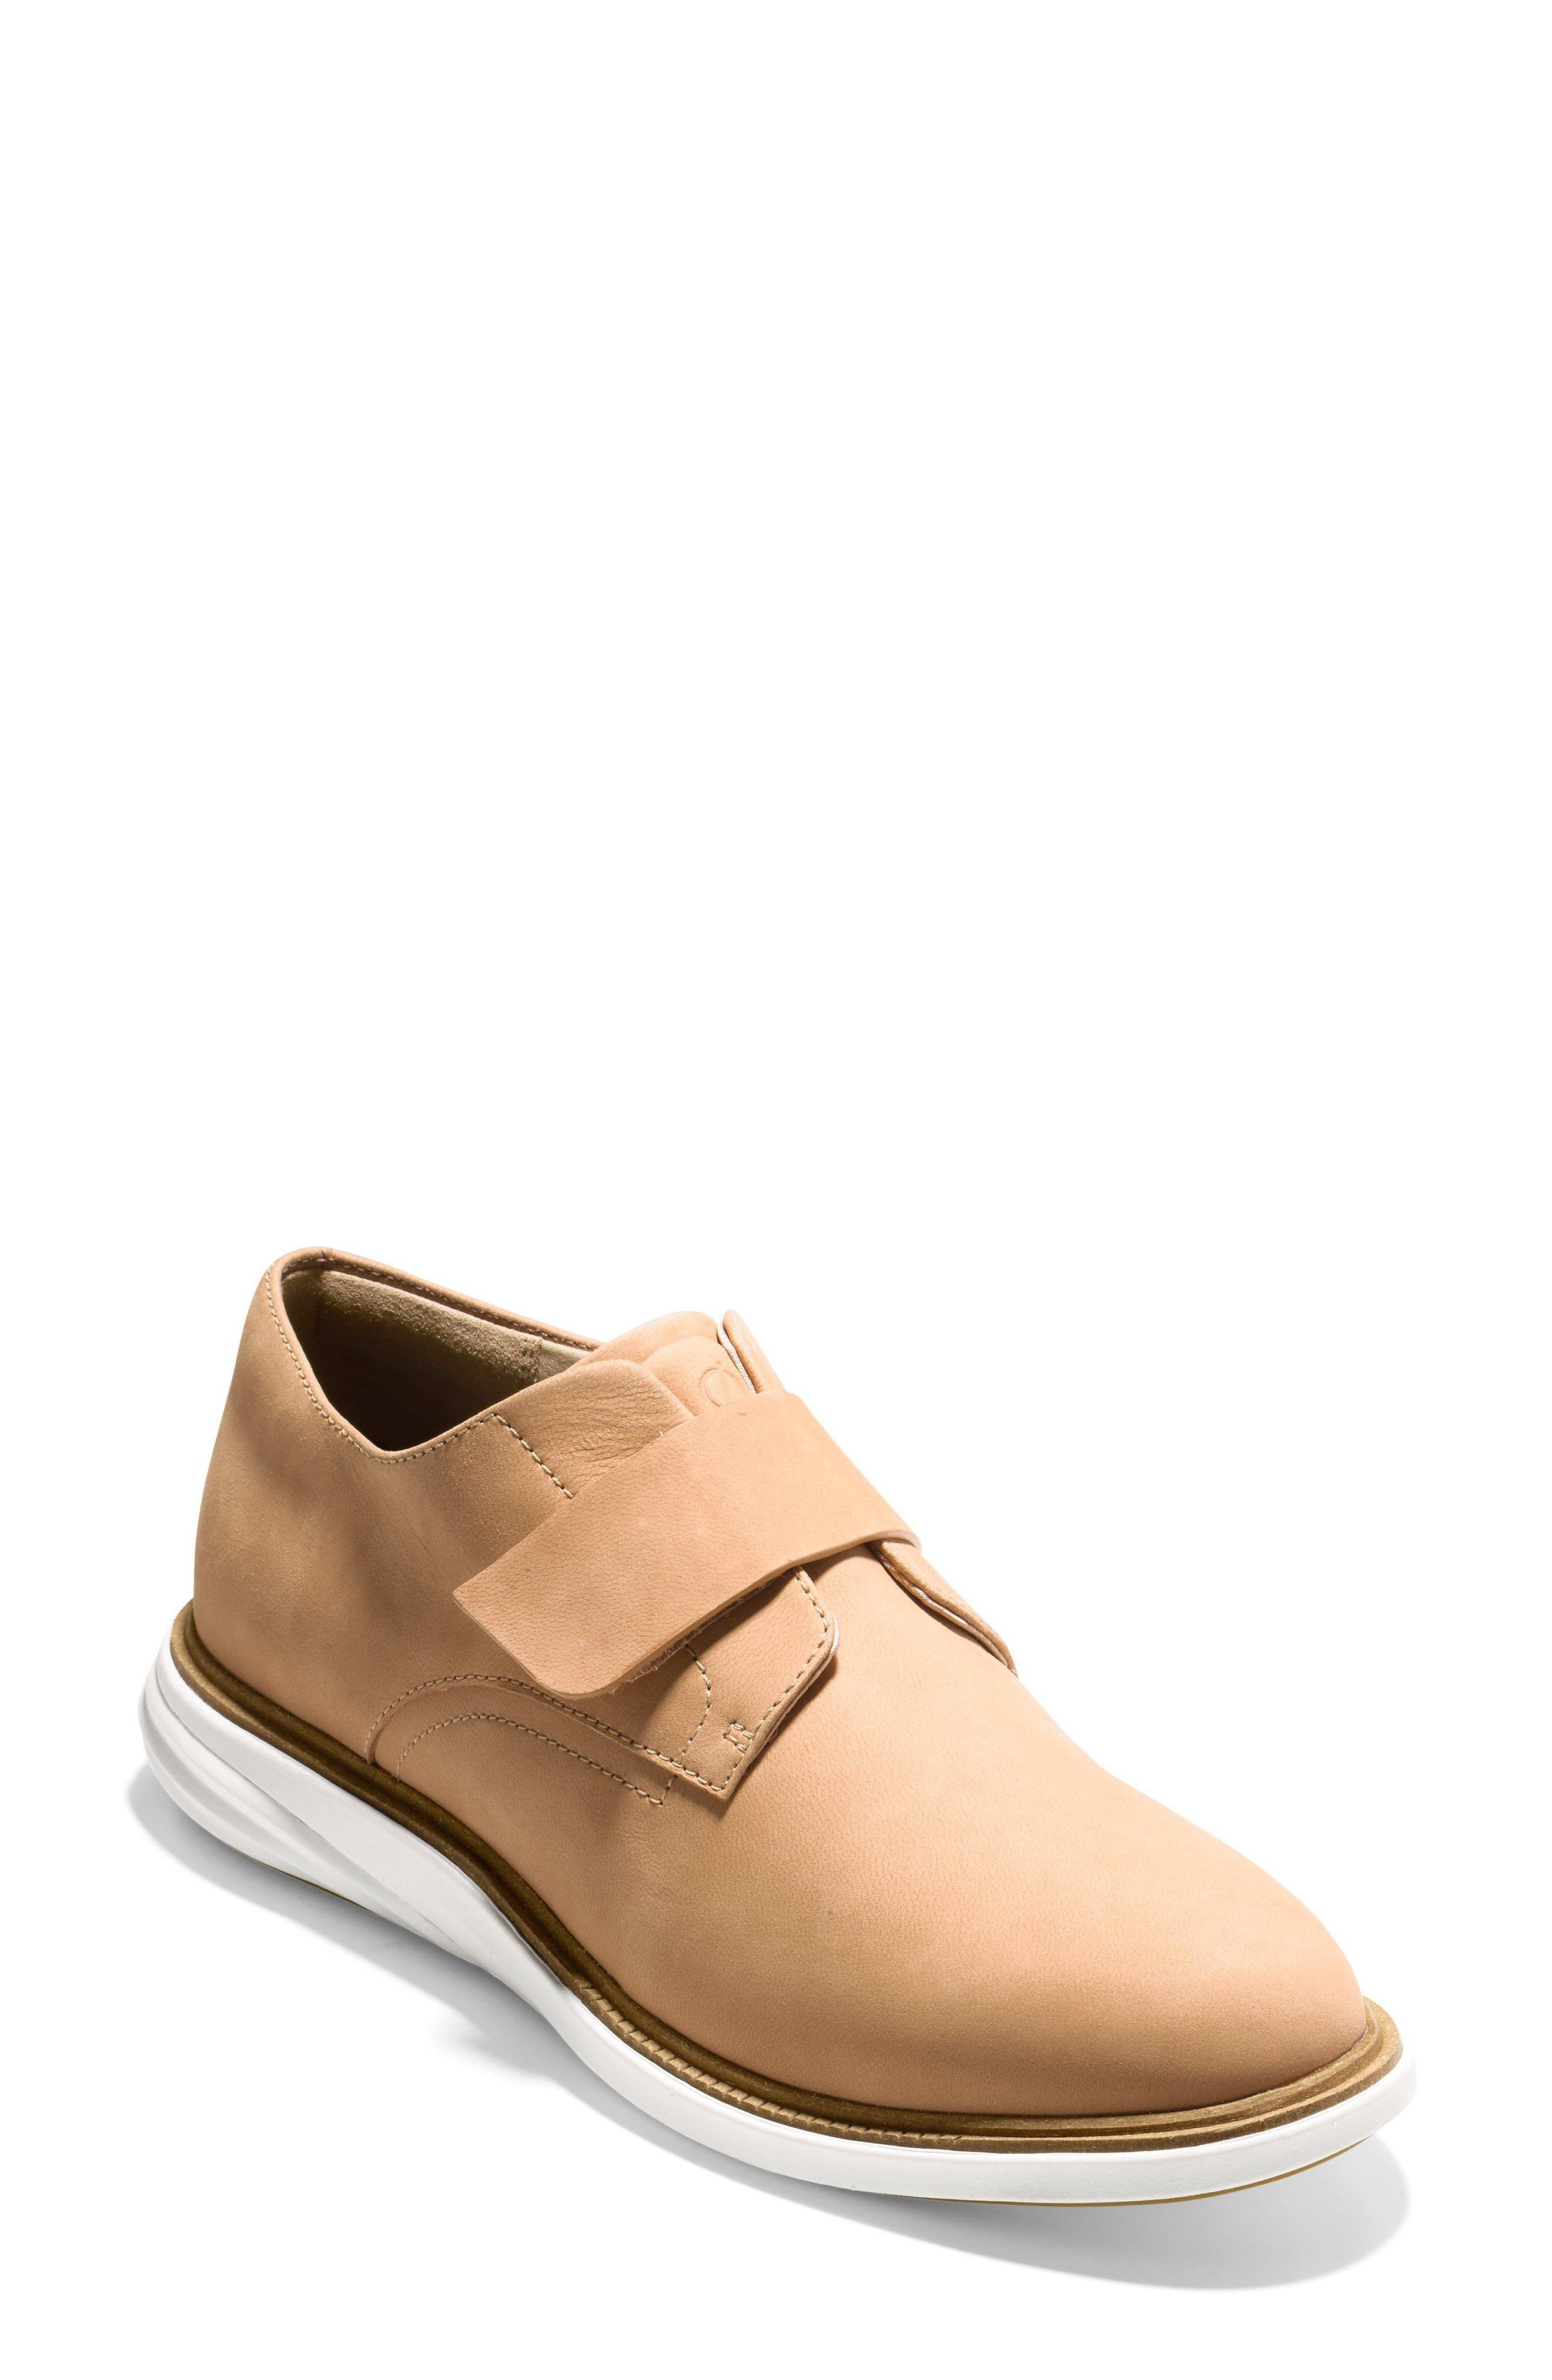 Grandevolution Oxford Sneaker,                             Main thumbnail 1, color,                             Iced Coffee Nubuck